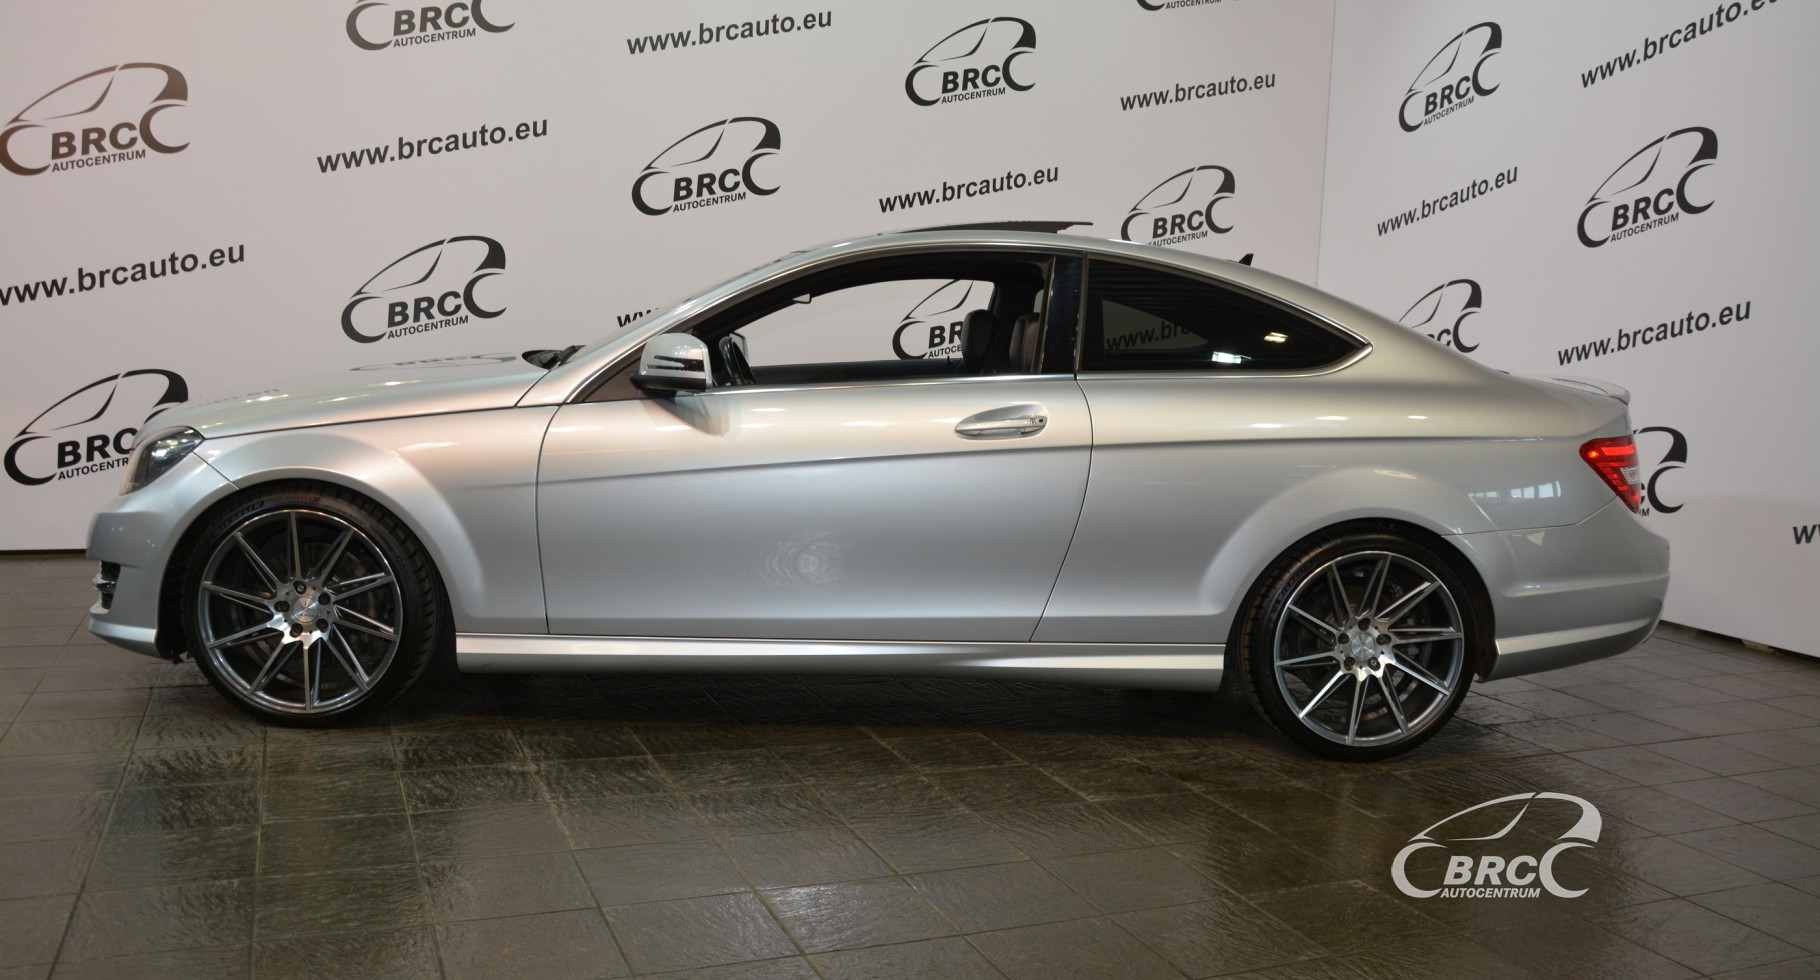 Mercedes-Benz C 350 4 Matic Coupe Automatas